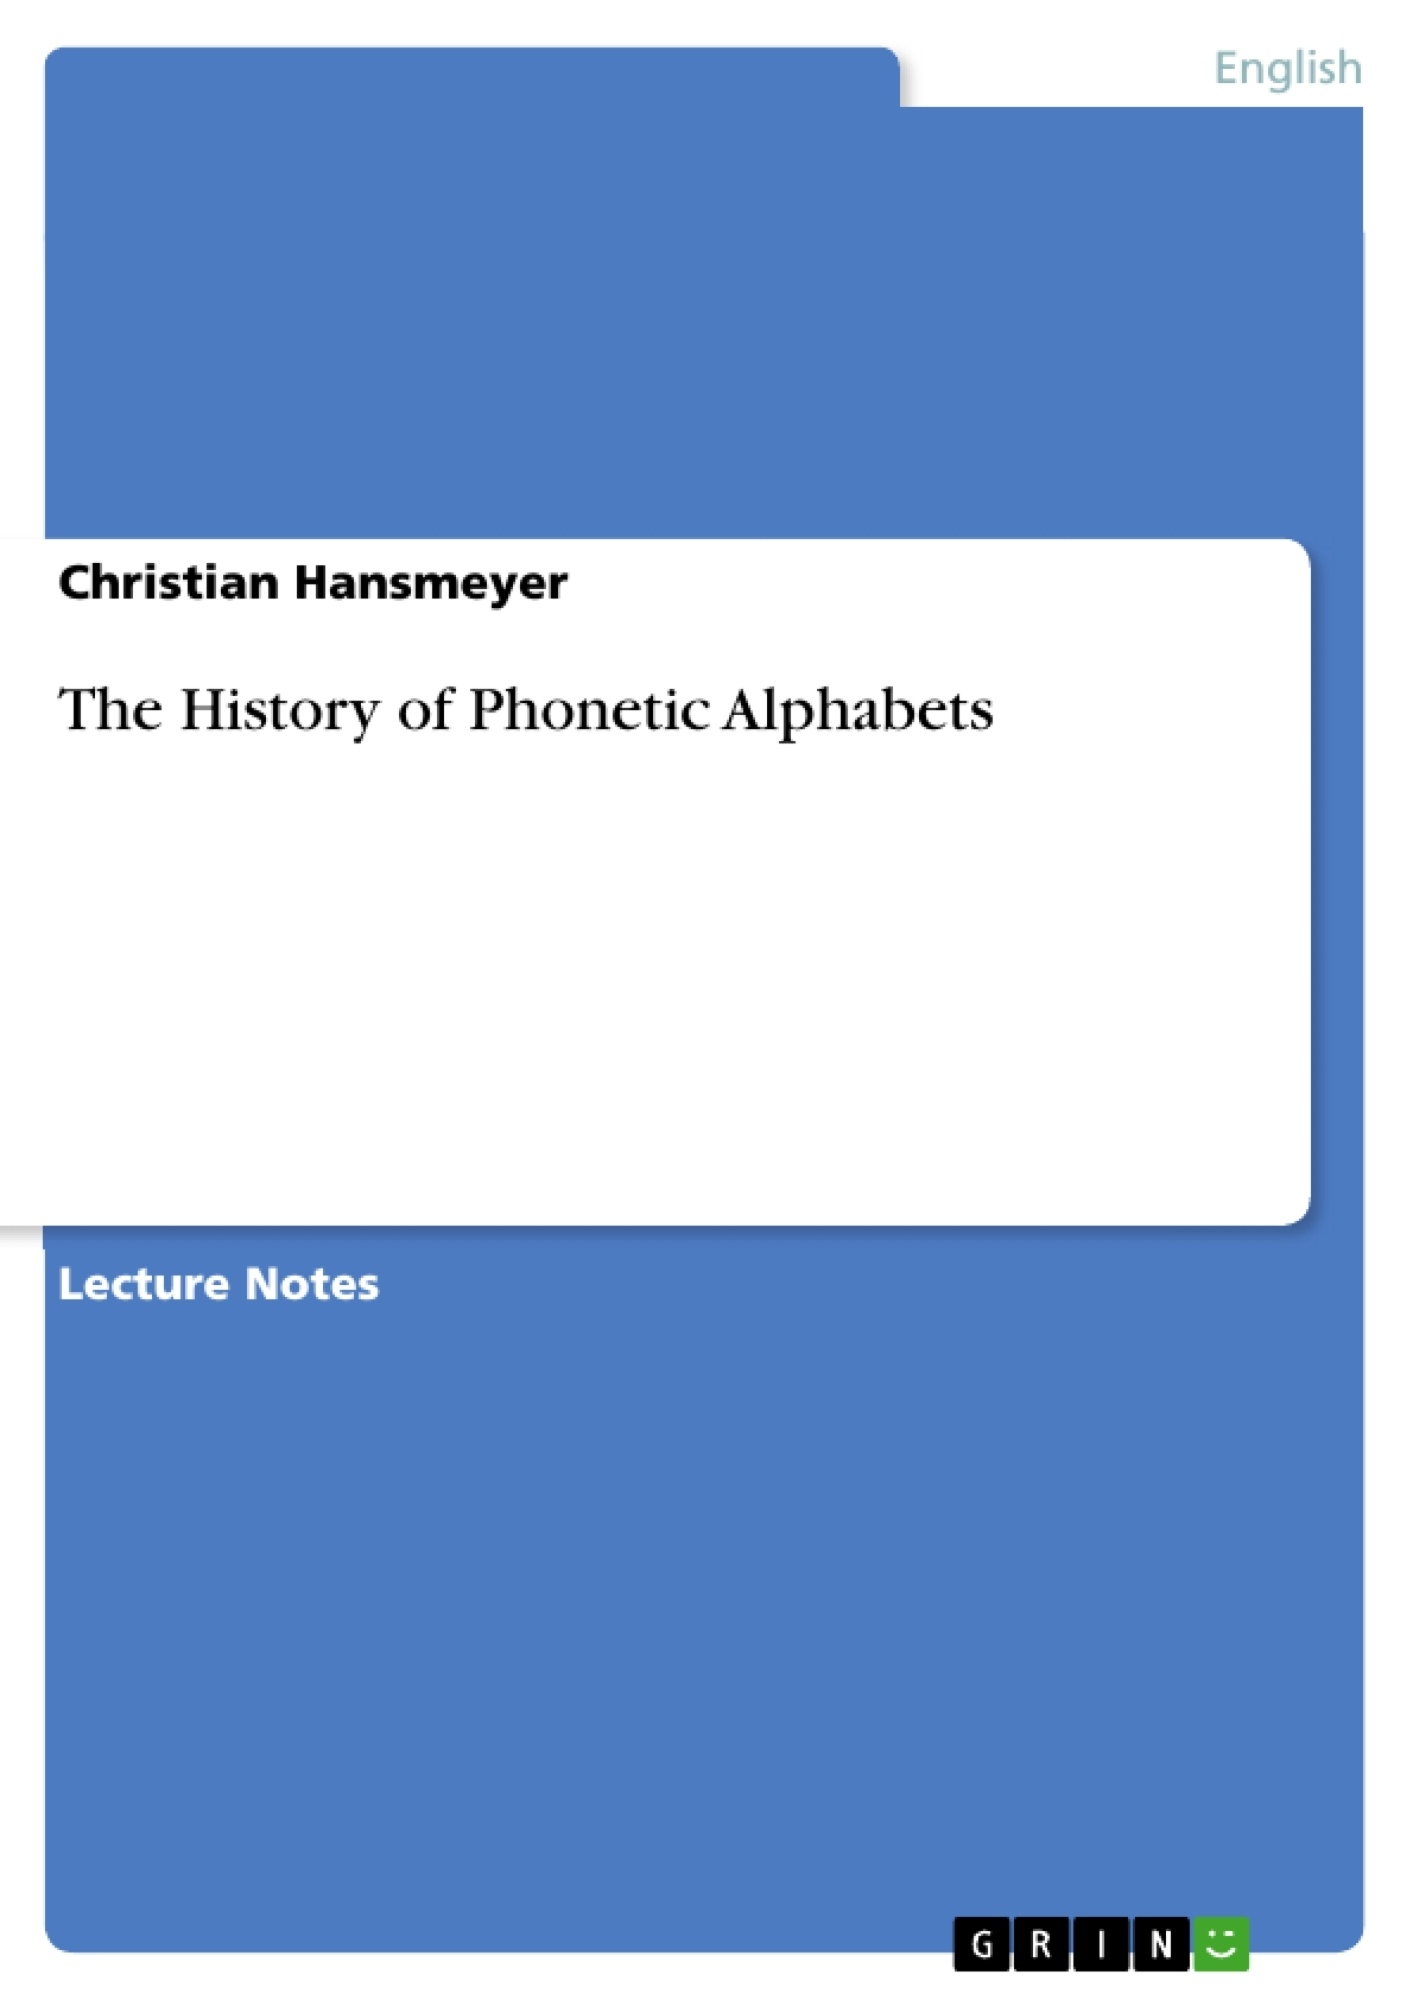 The History Of Phonetic Alphabets Publish Your Masters Thesis